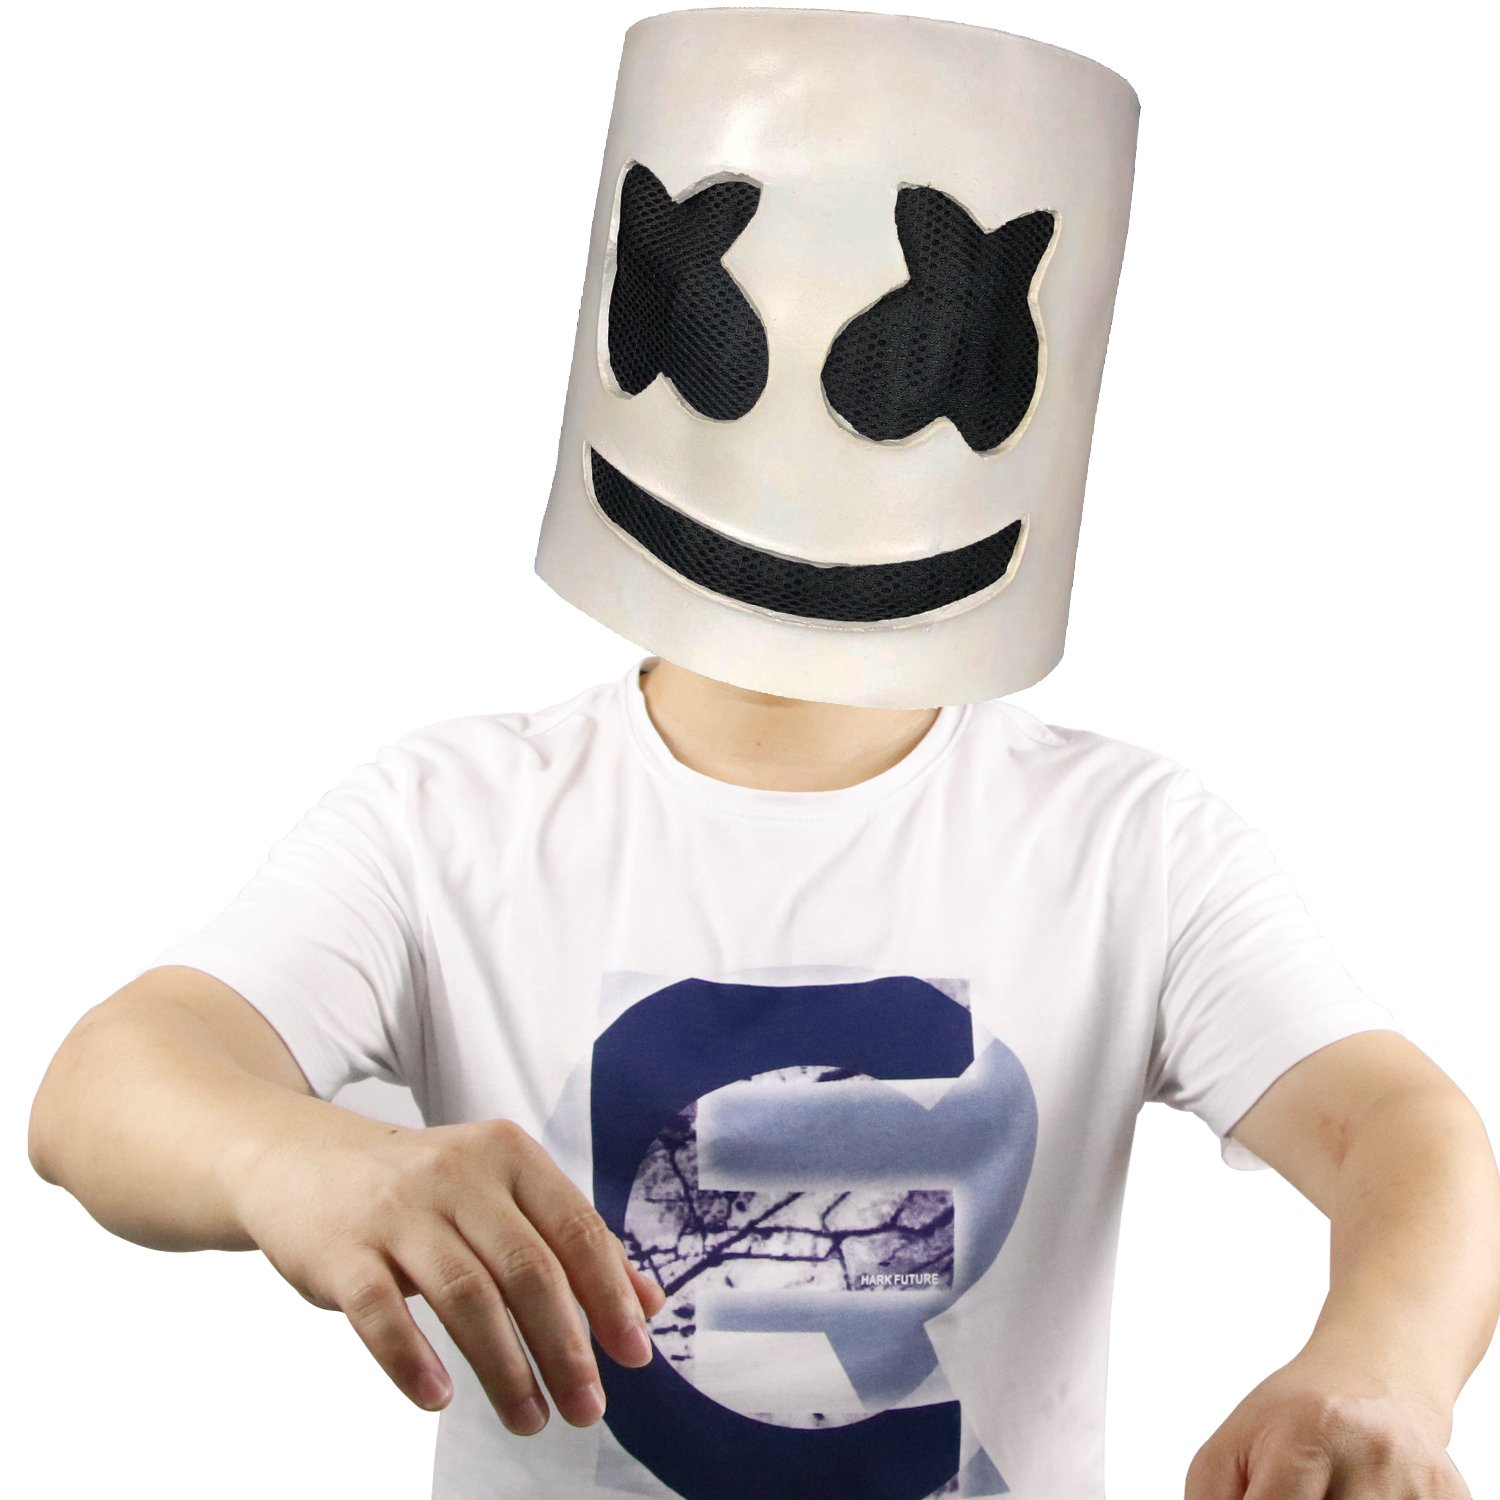 9d9b60437263 【WHO I AM】--For those who didn`t know, Marshmello is an anonymous new dj  and producer putting out great music in the trap and future bass scene.